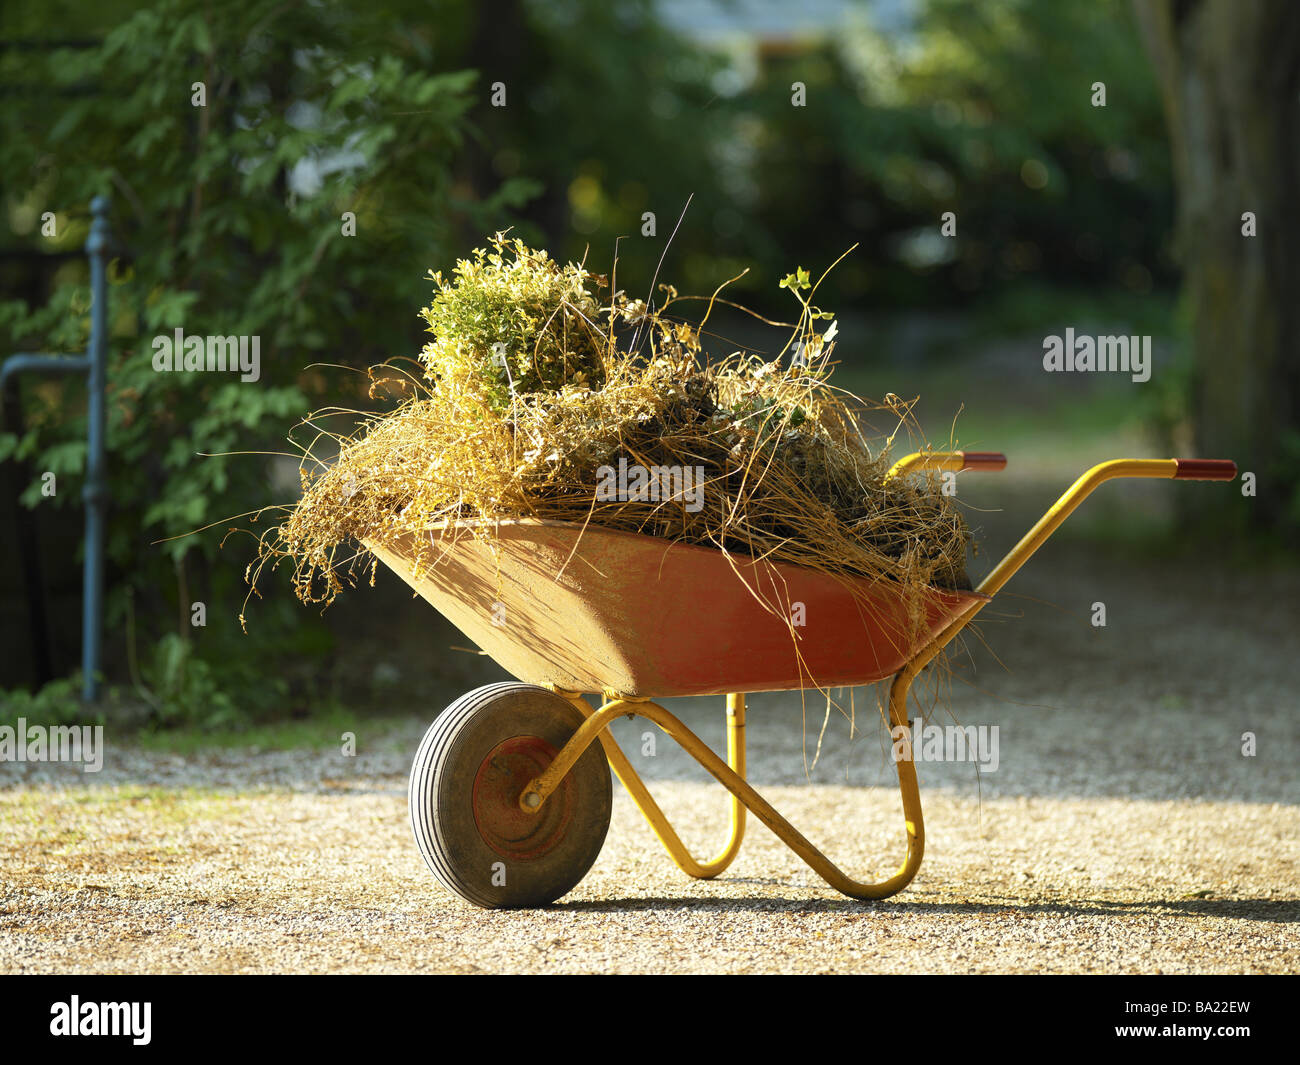 Grit Gardening Stock Photos & Grit Gardening Stock Images - Alamy